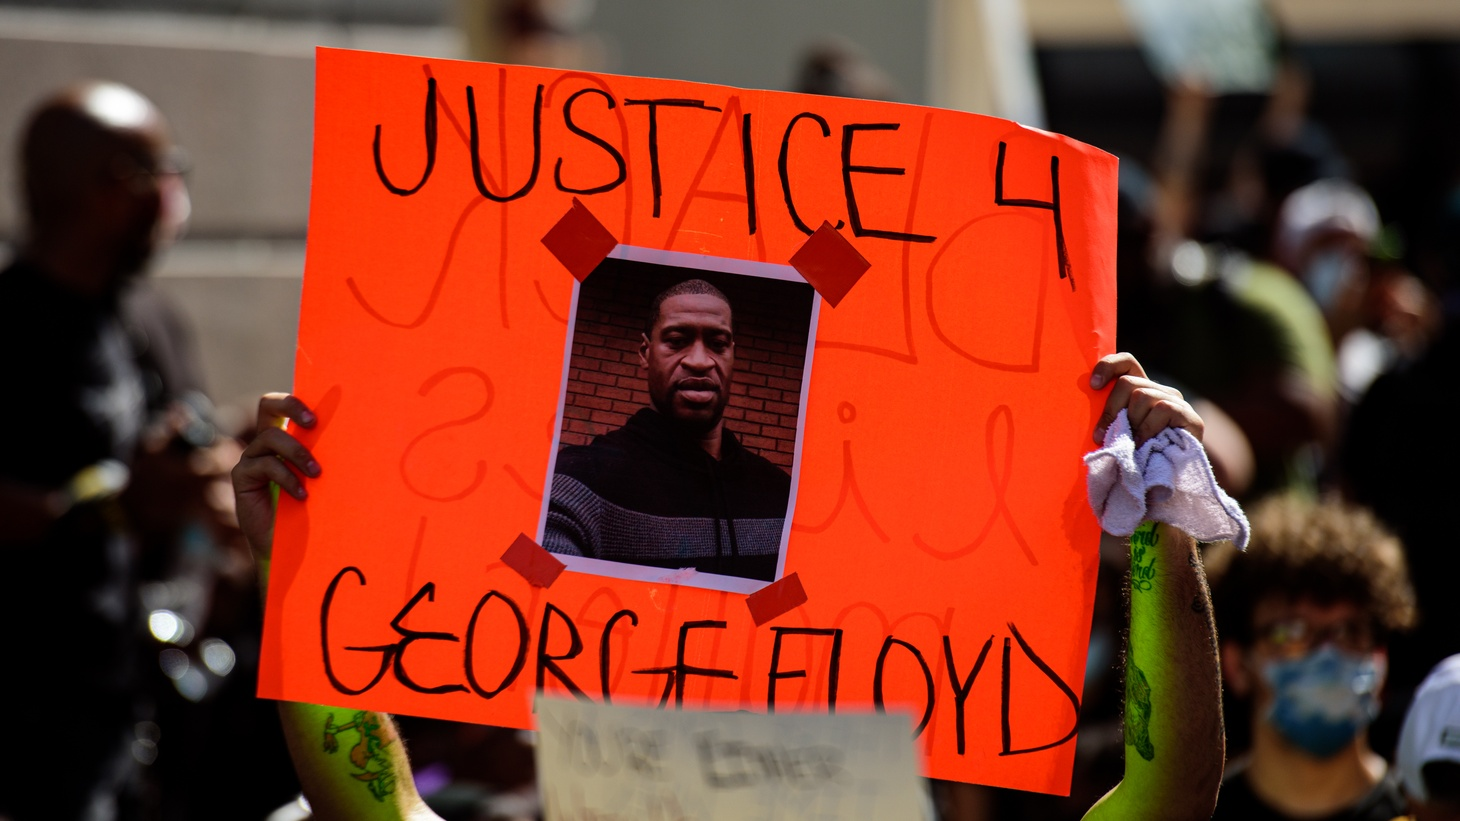 Protestor holding a 'Justice for George Floyd' poster.